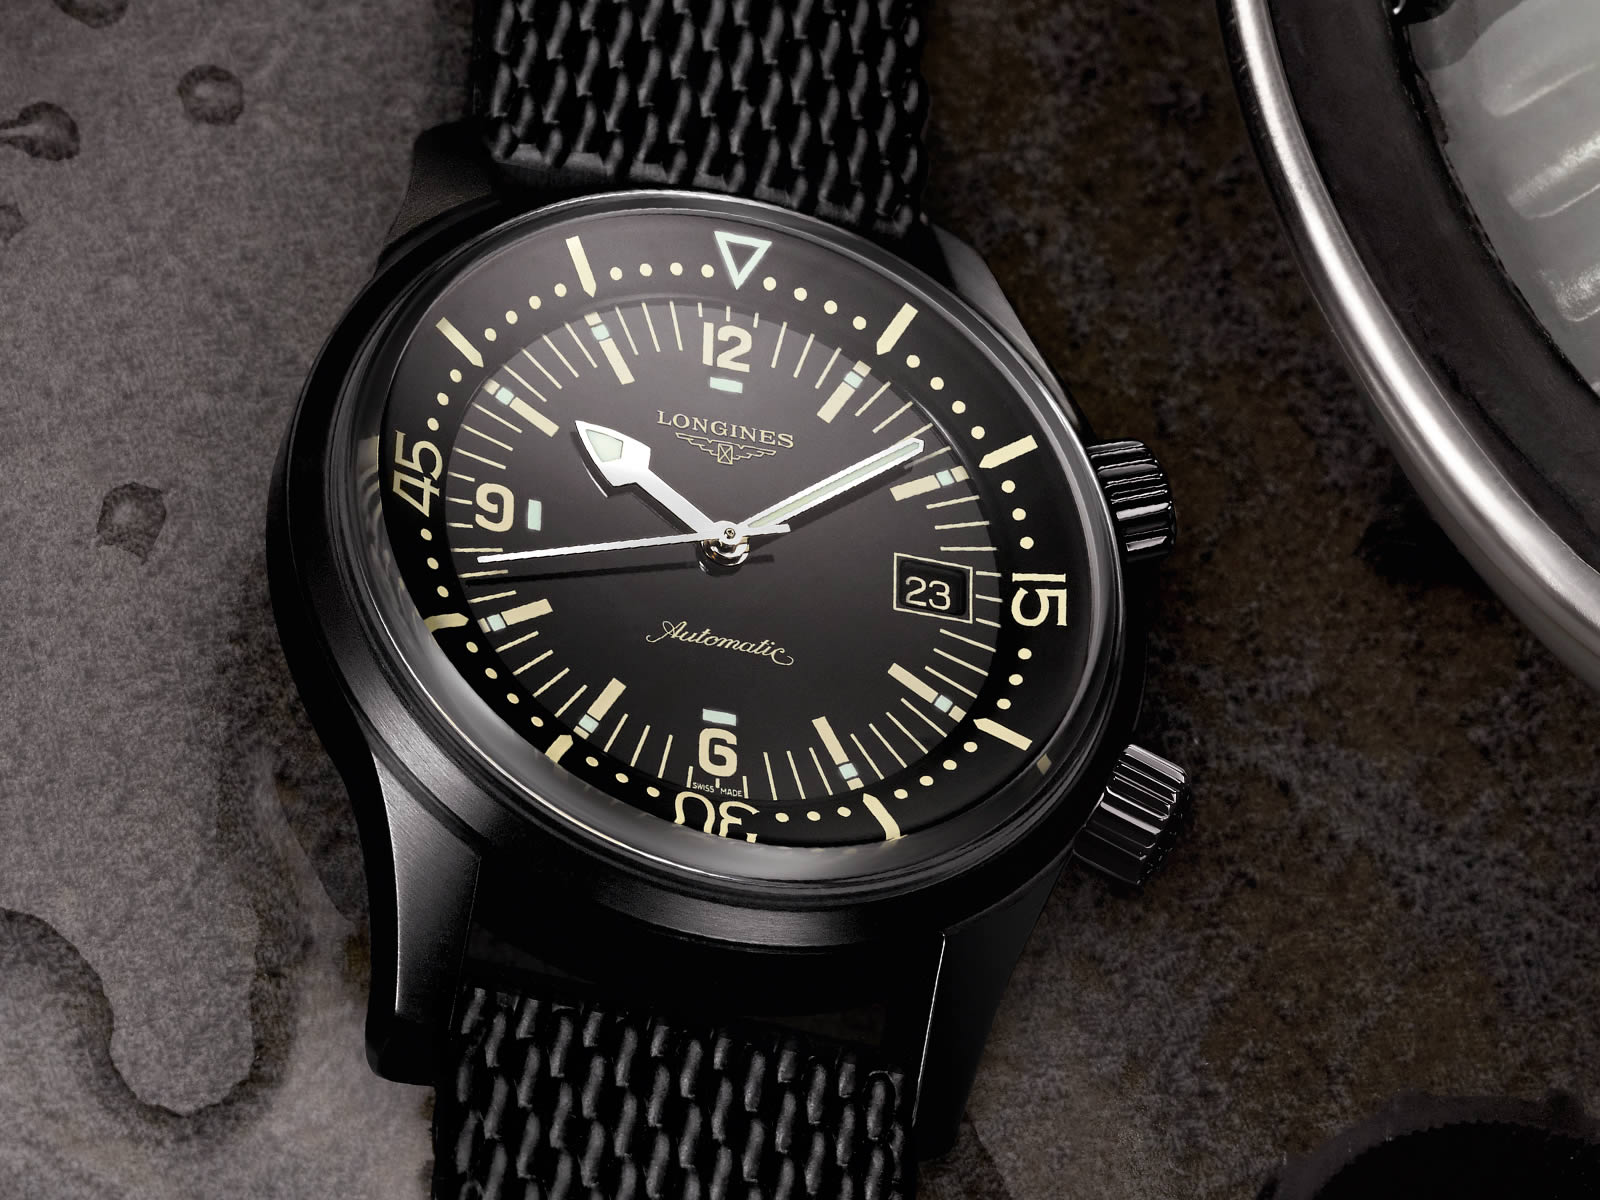 l3-774-2-50-9-the-longines-legend-diver-watch-2.jpg